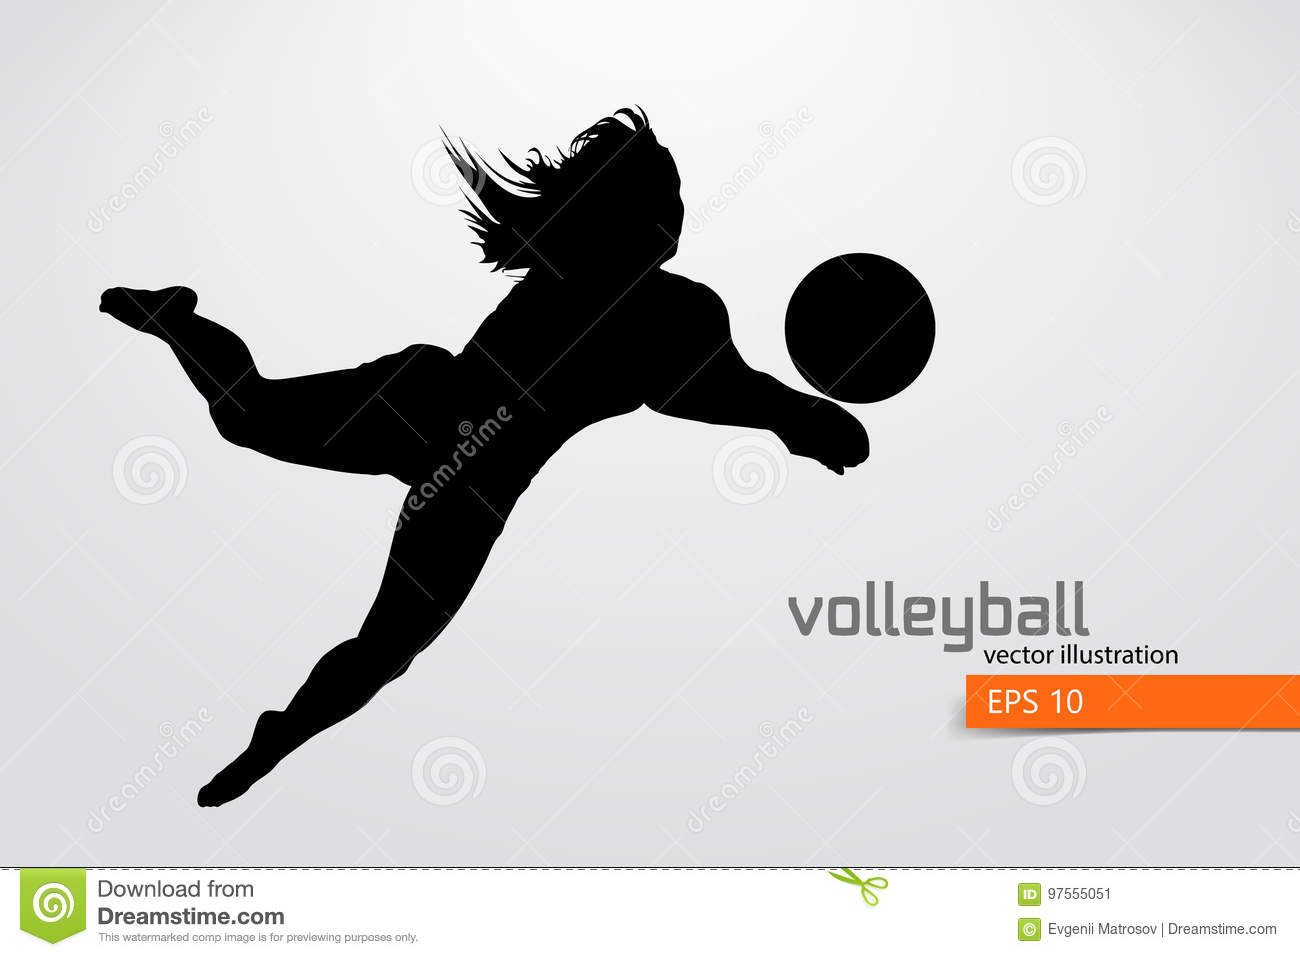 Abstract Triangle Volleyball Player Silhouette Stock: Silhouette Of Volleyball Player. Stock Vector